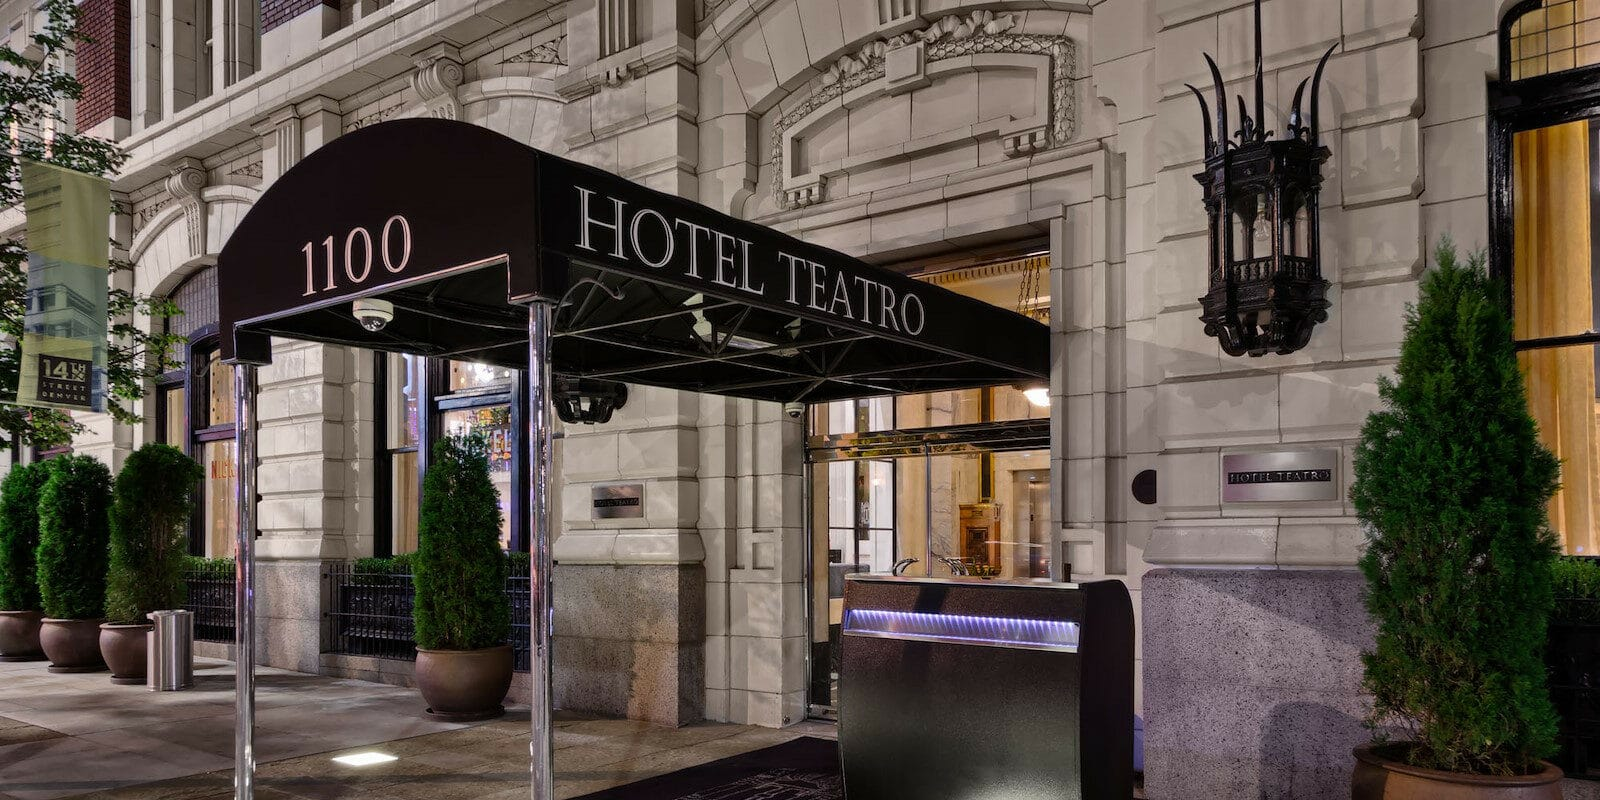 Image of the entrance to Hotel Teatro in Denver, CO